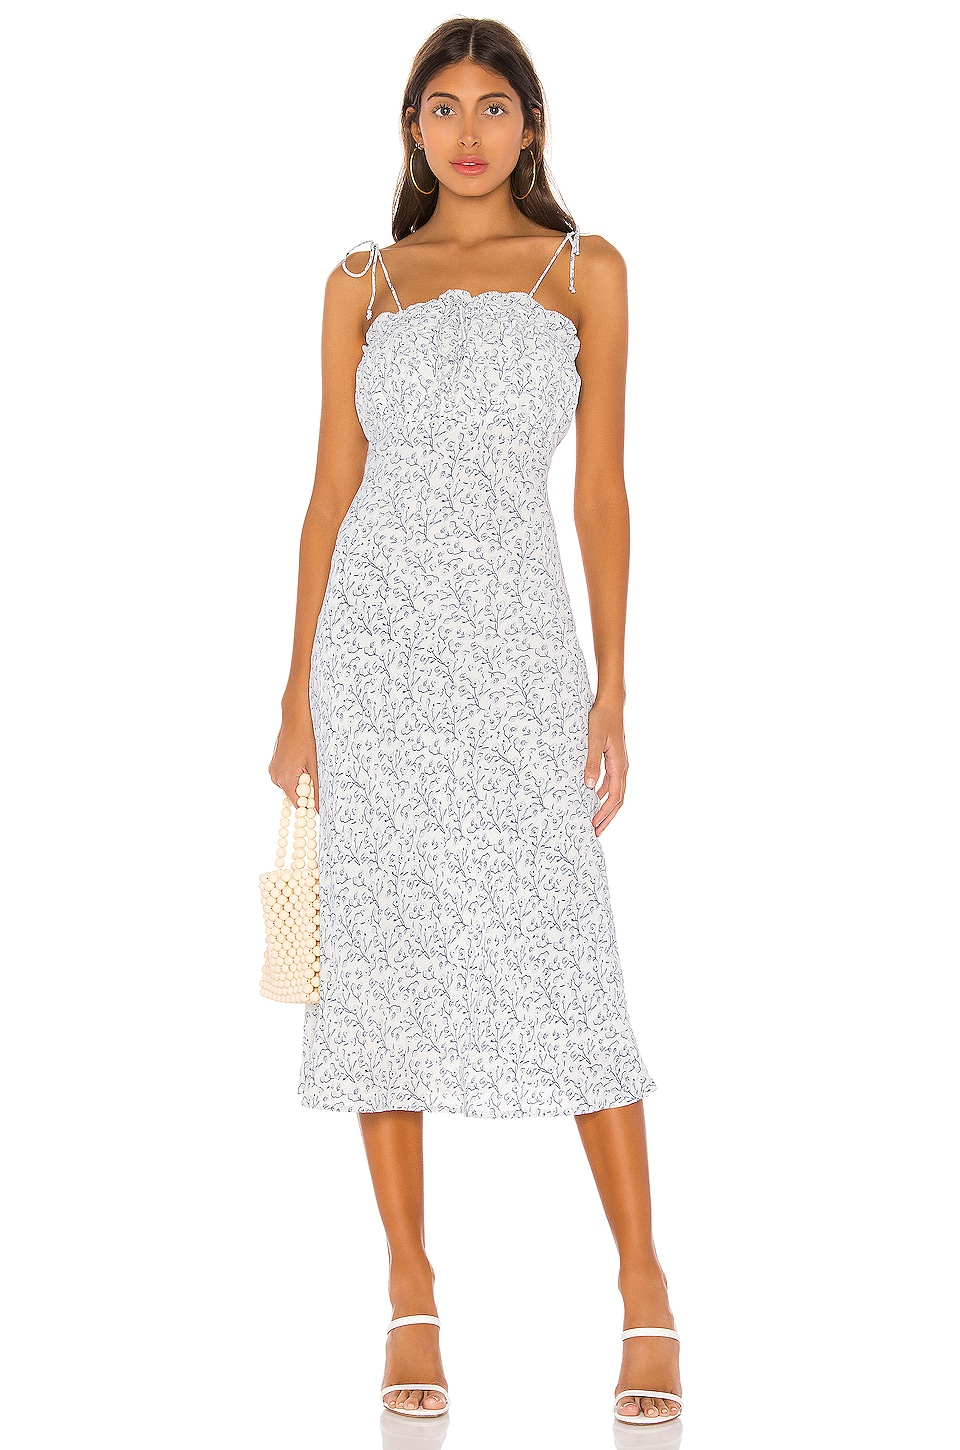 Cleobella X REVOLVE Selena Midi Dress in Primrose